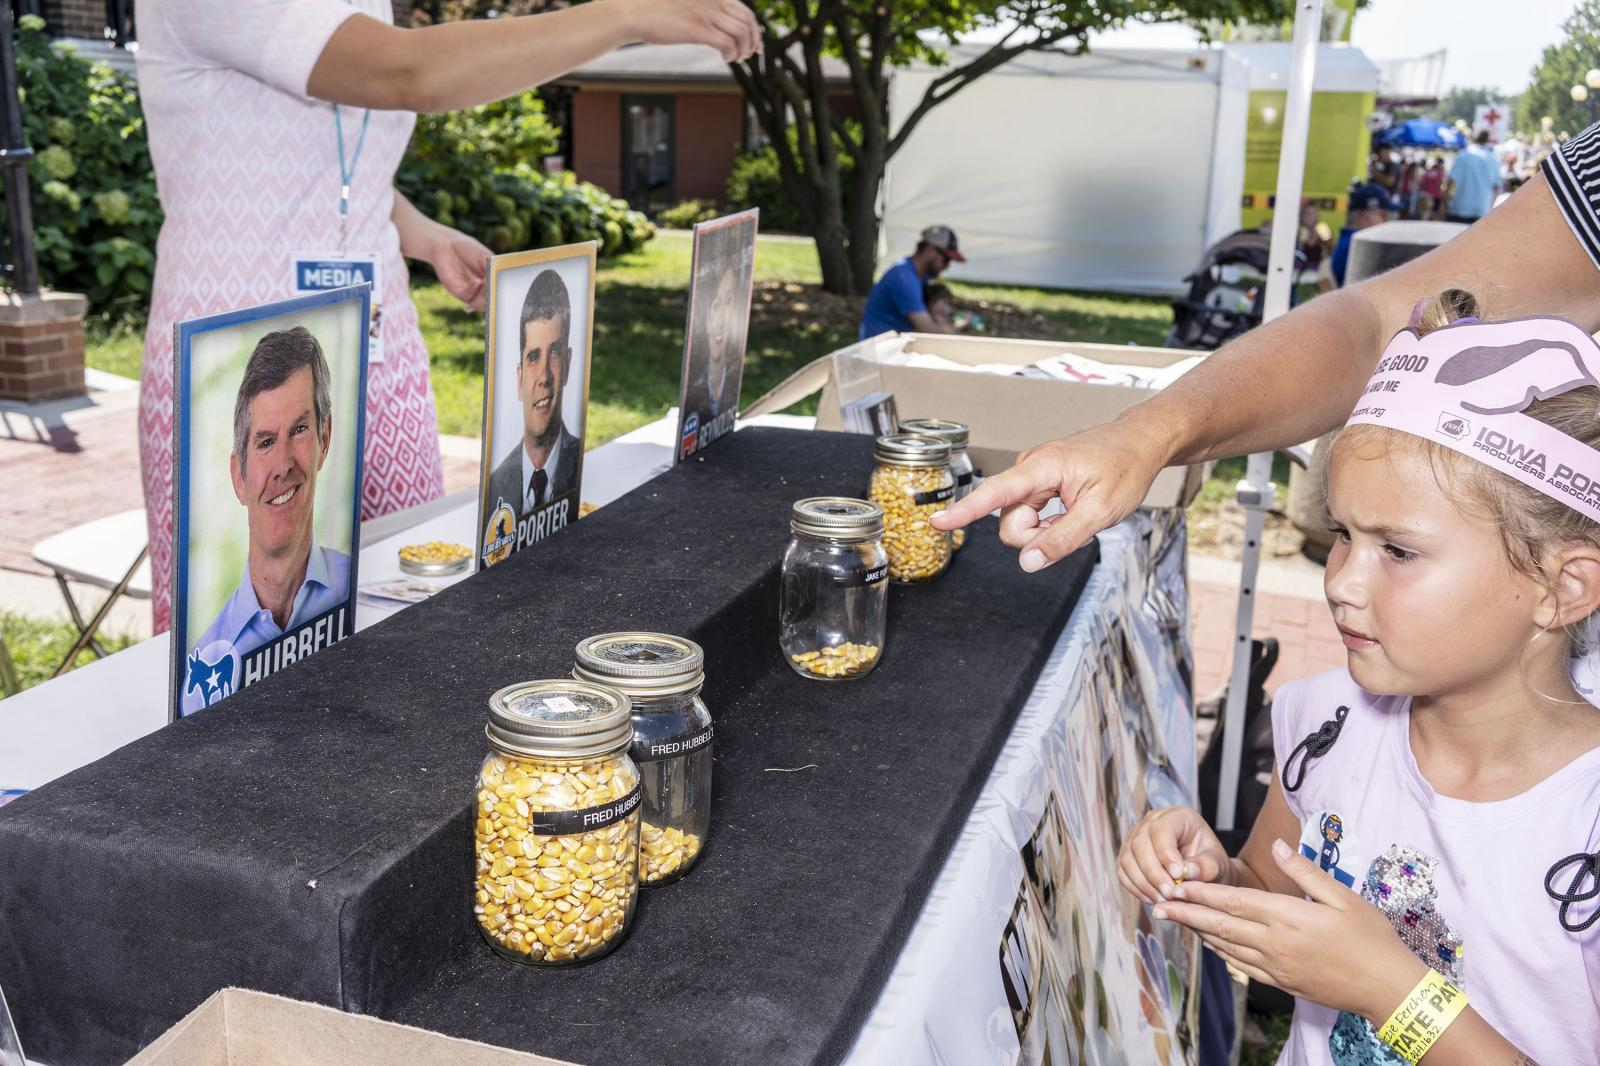 A parent points to a seed jar representing votes for Iowa gubernatorial candidate Fred Hubbell at the Iowa State Fair at Des Moines, Iowa, U.S. August 9, 2018. REUTERS/KC McGinnis